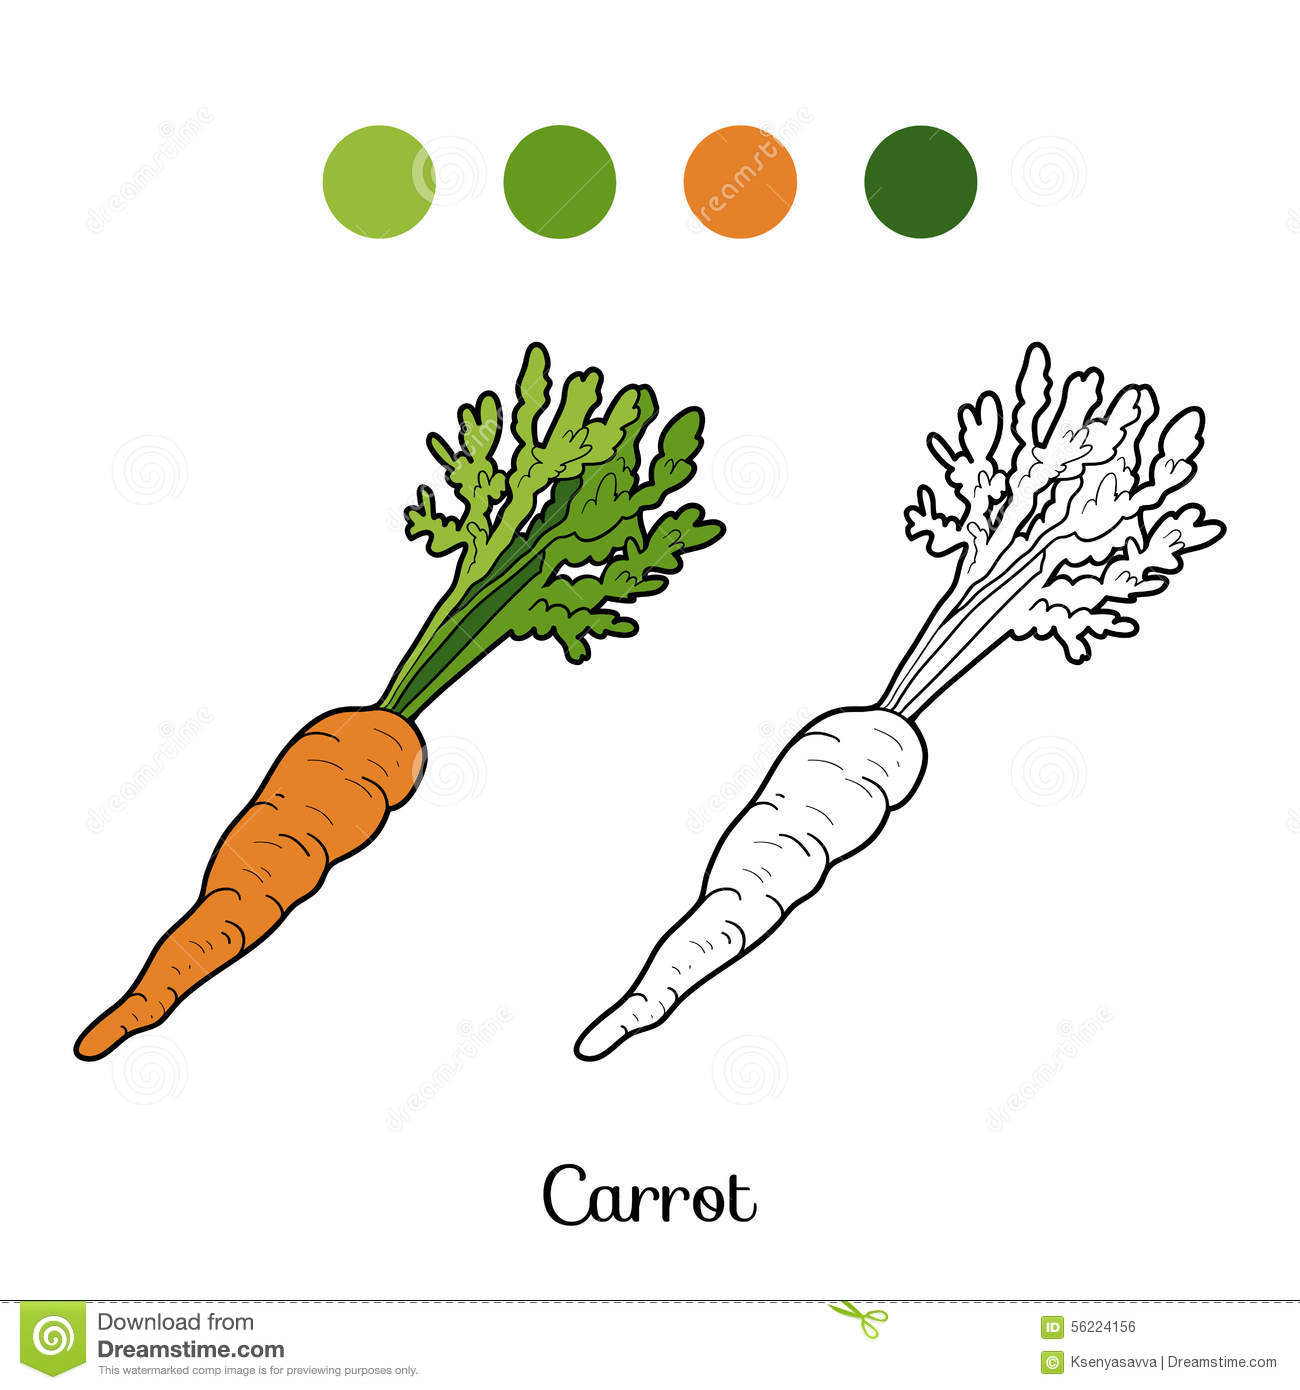 Coloring book pictures of vegetables - Coloring Book Fruits And Vegetables Carrot